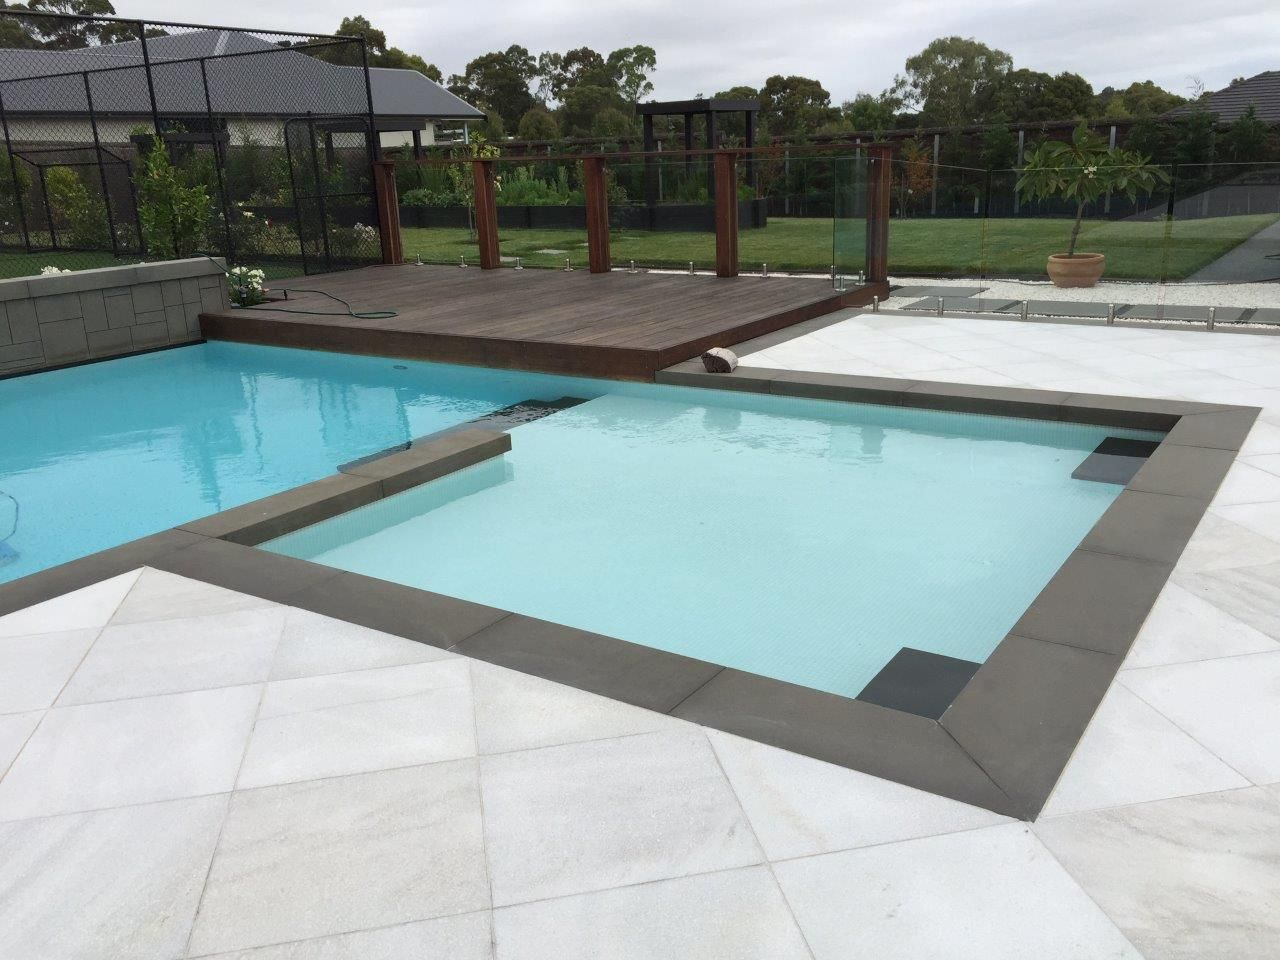 Harkaway Bluestone Pavers & Tiles | Pool paving, Pool coping ...